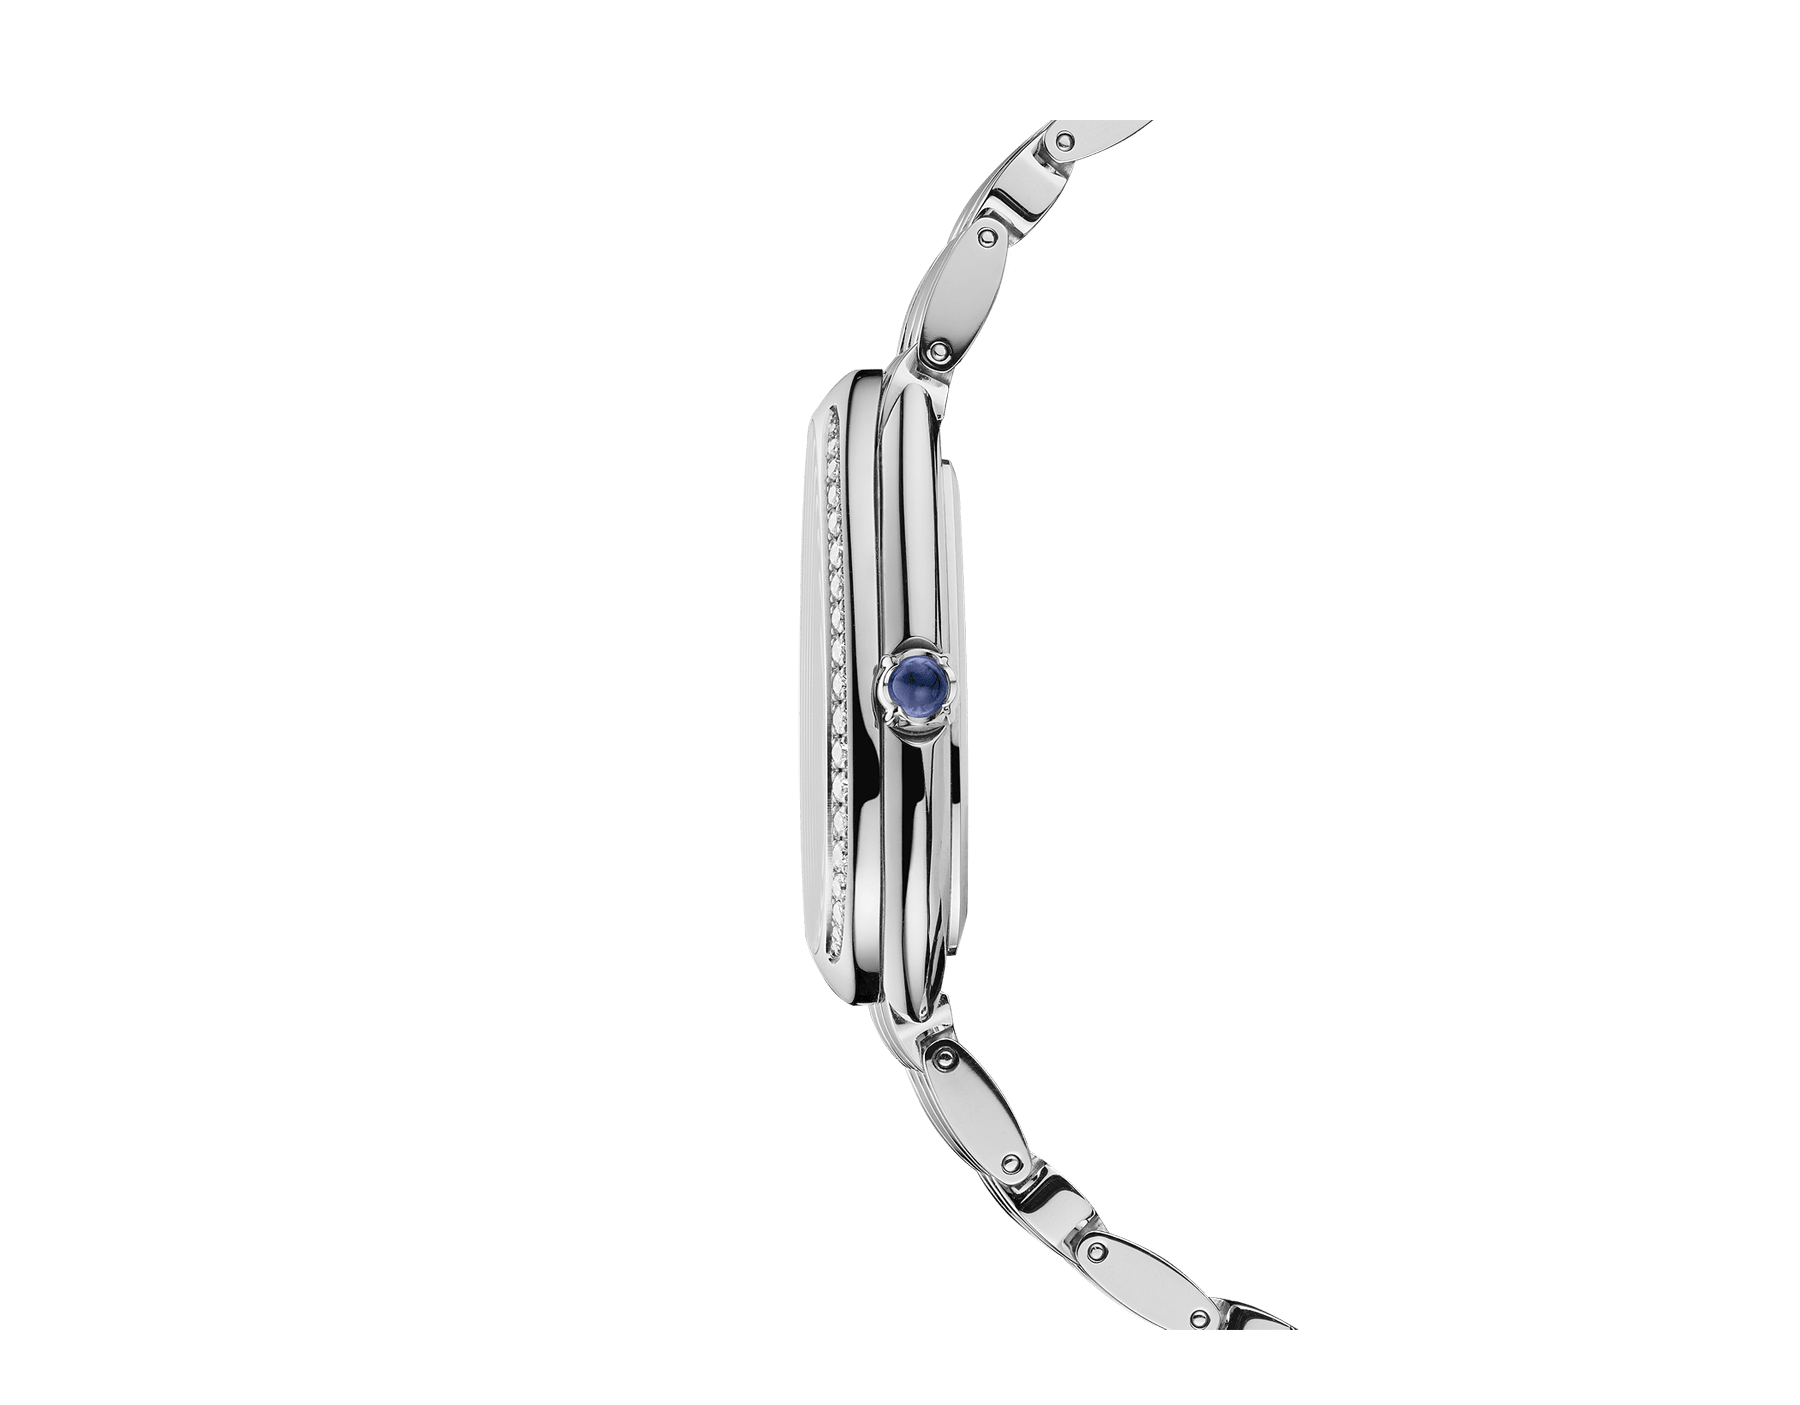 Serpenti Seduttori watch with 18 kt white gold case, 18 kt white gold bracelet, 18 kt white gold bezel set with diamonds and a white silver opaline dial. 103148 image 3